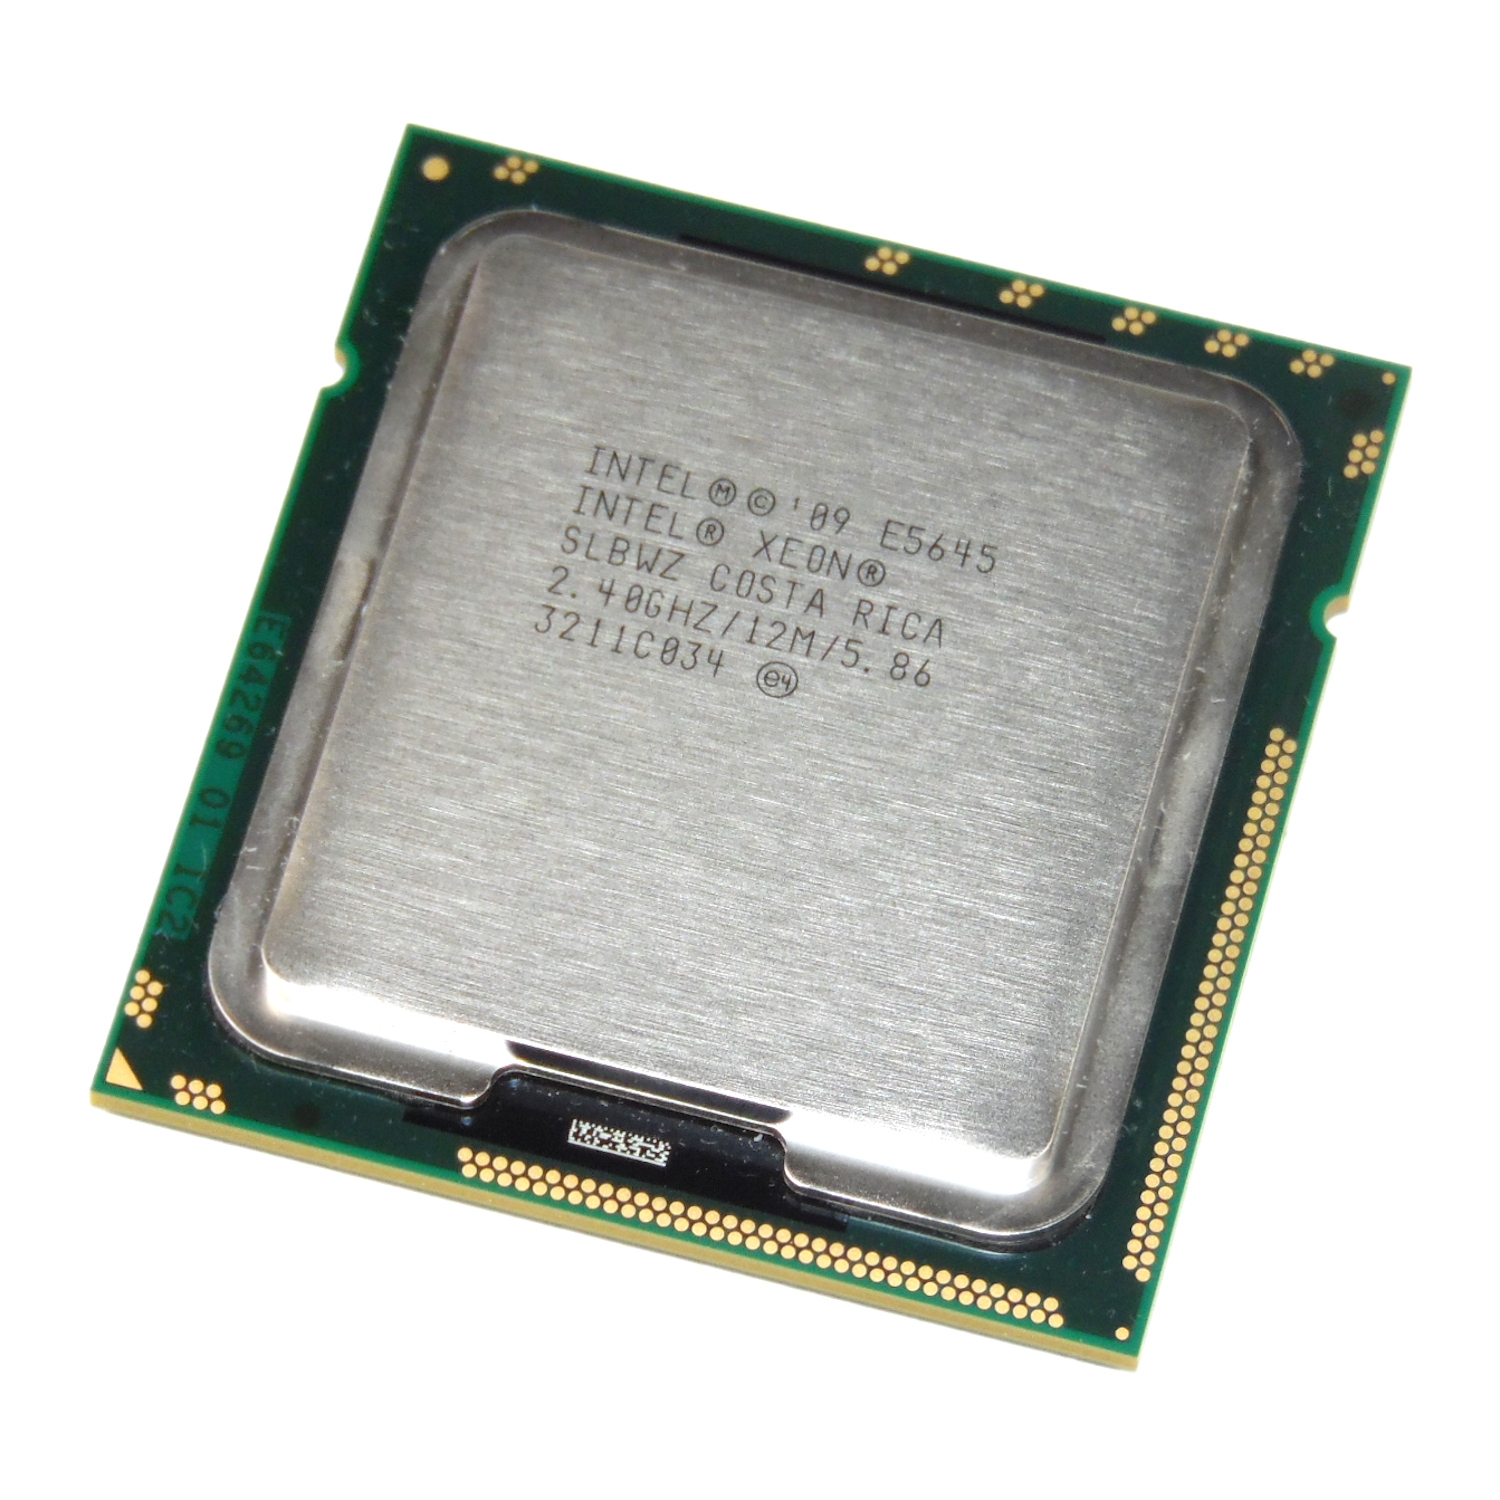 Processor w//Grease Intel Xeon E5645 2.4GHz Six Core SLBWZ AT80614003597AC